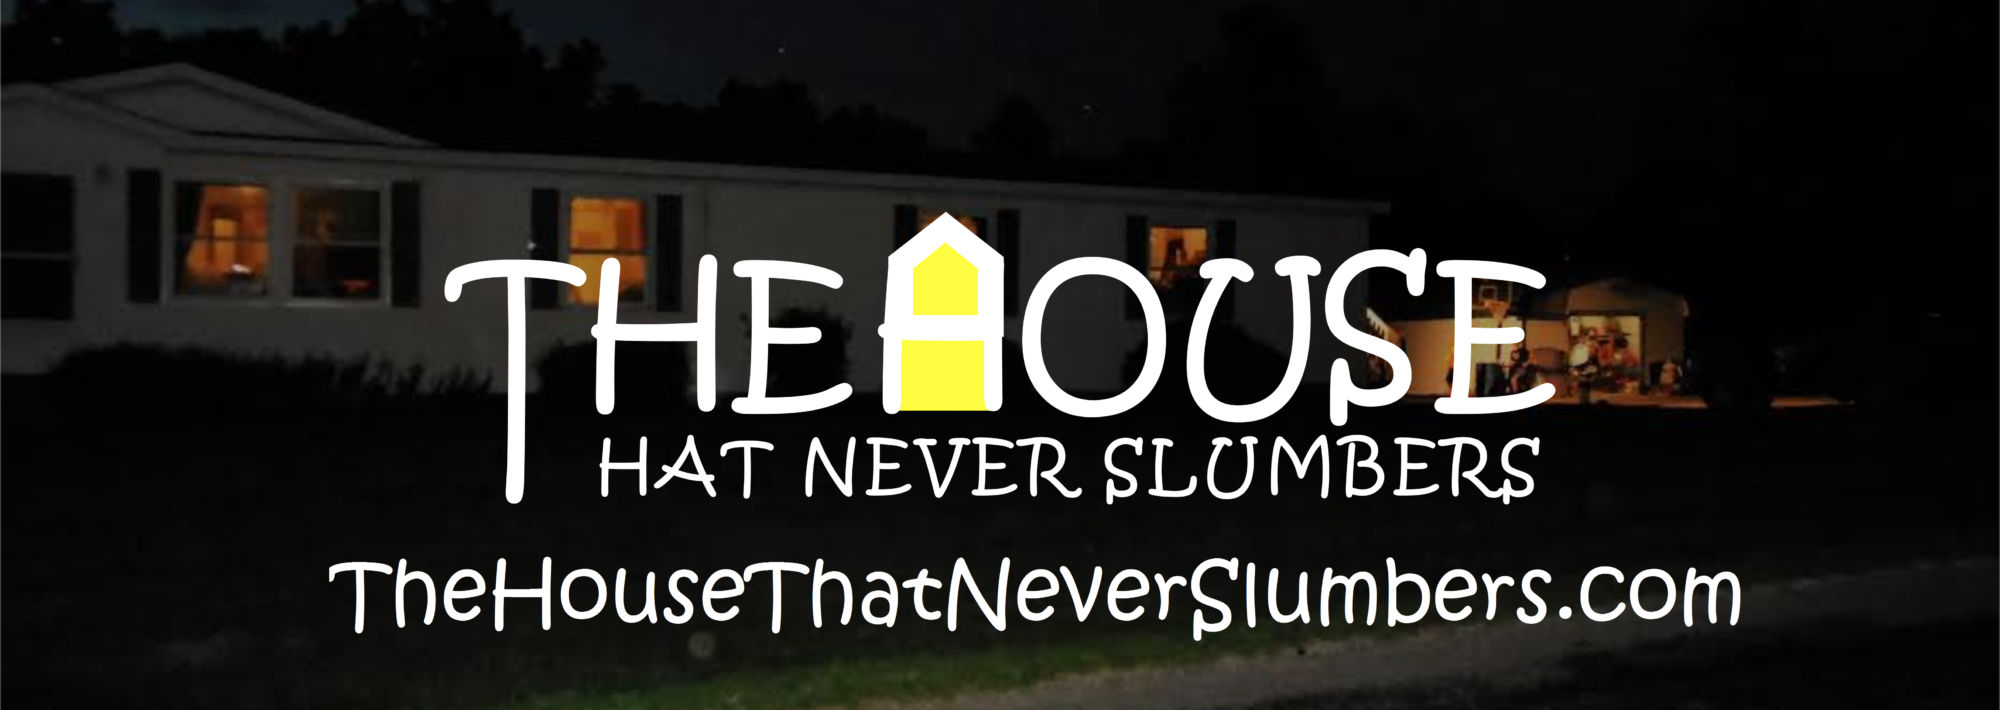 The House That Never Slumbers